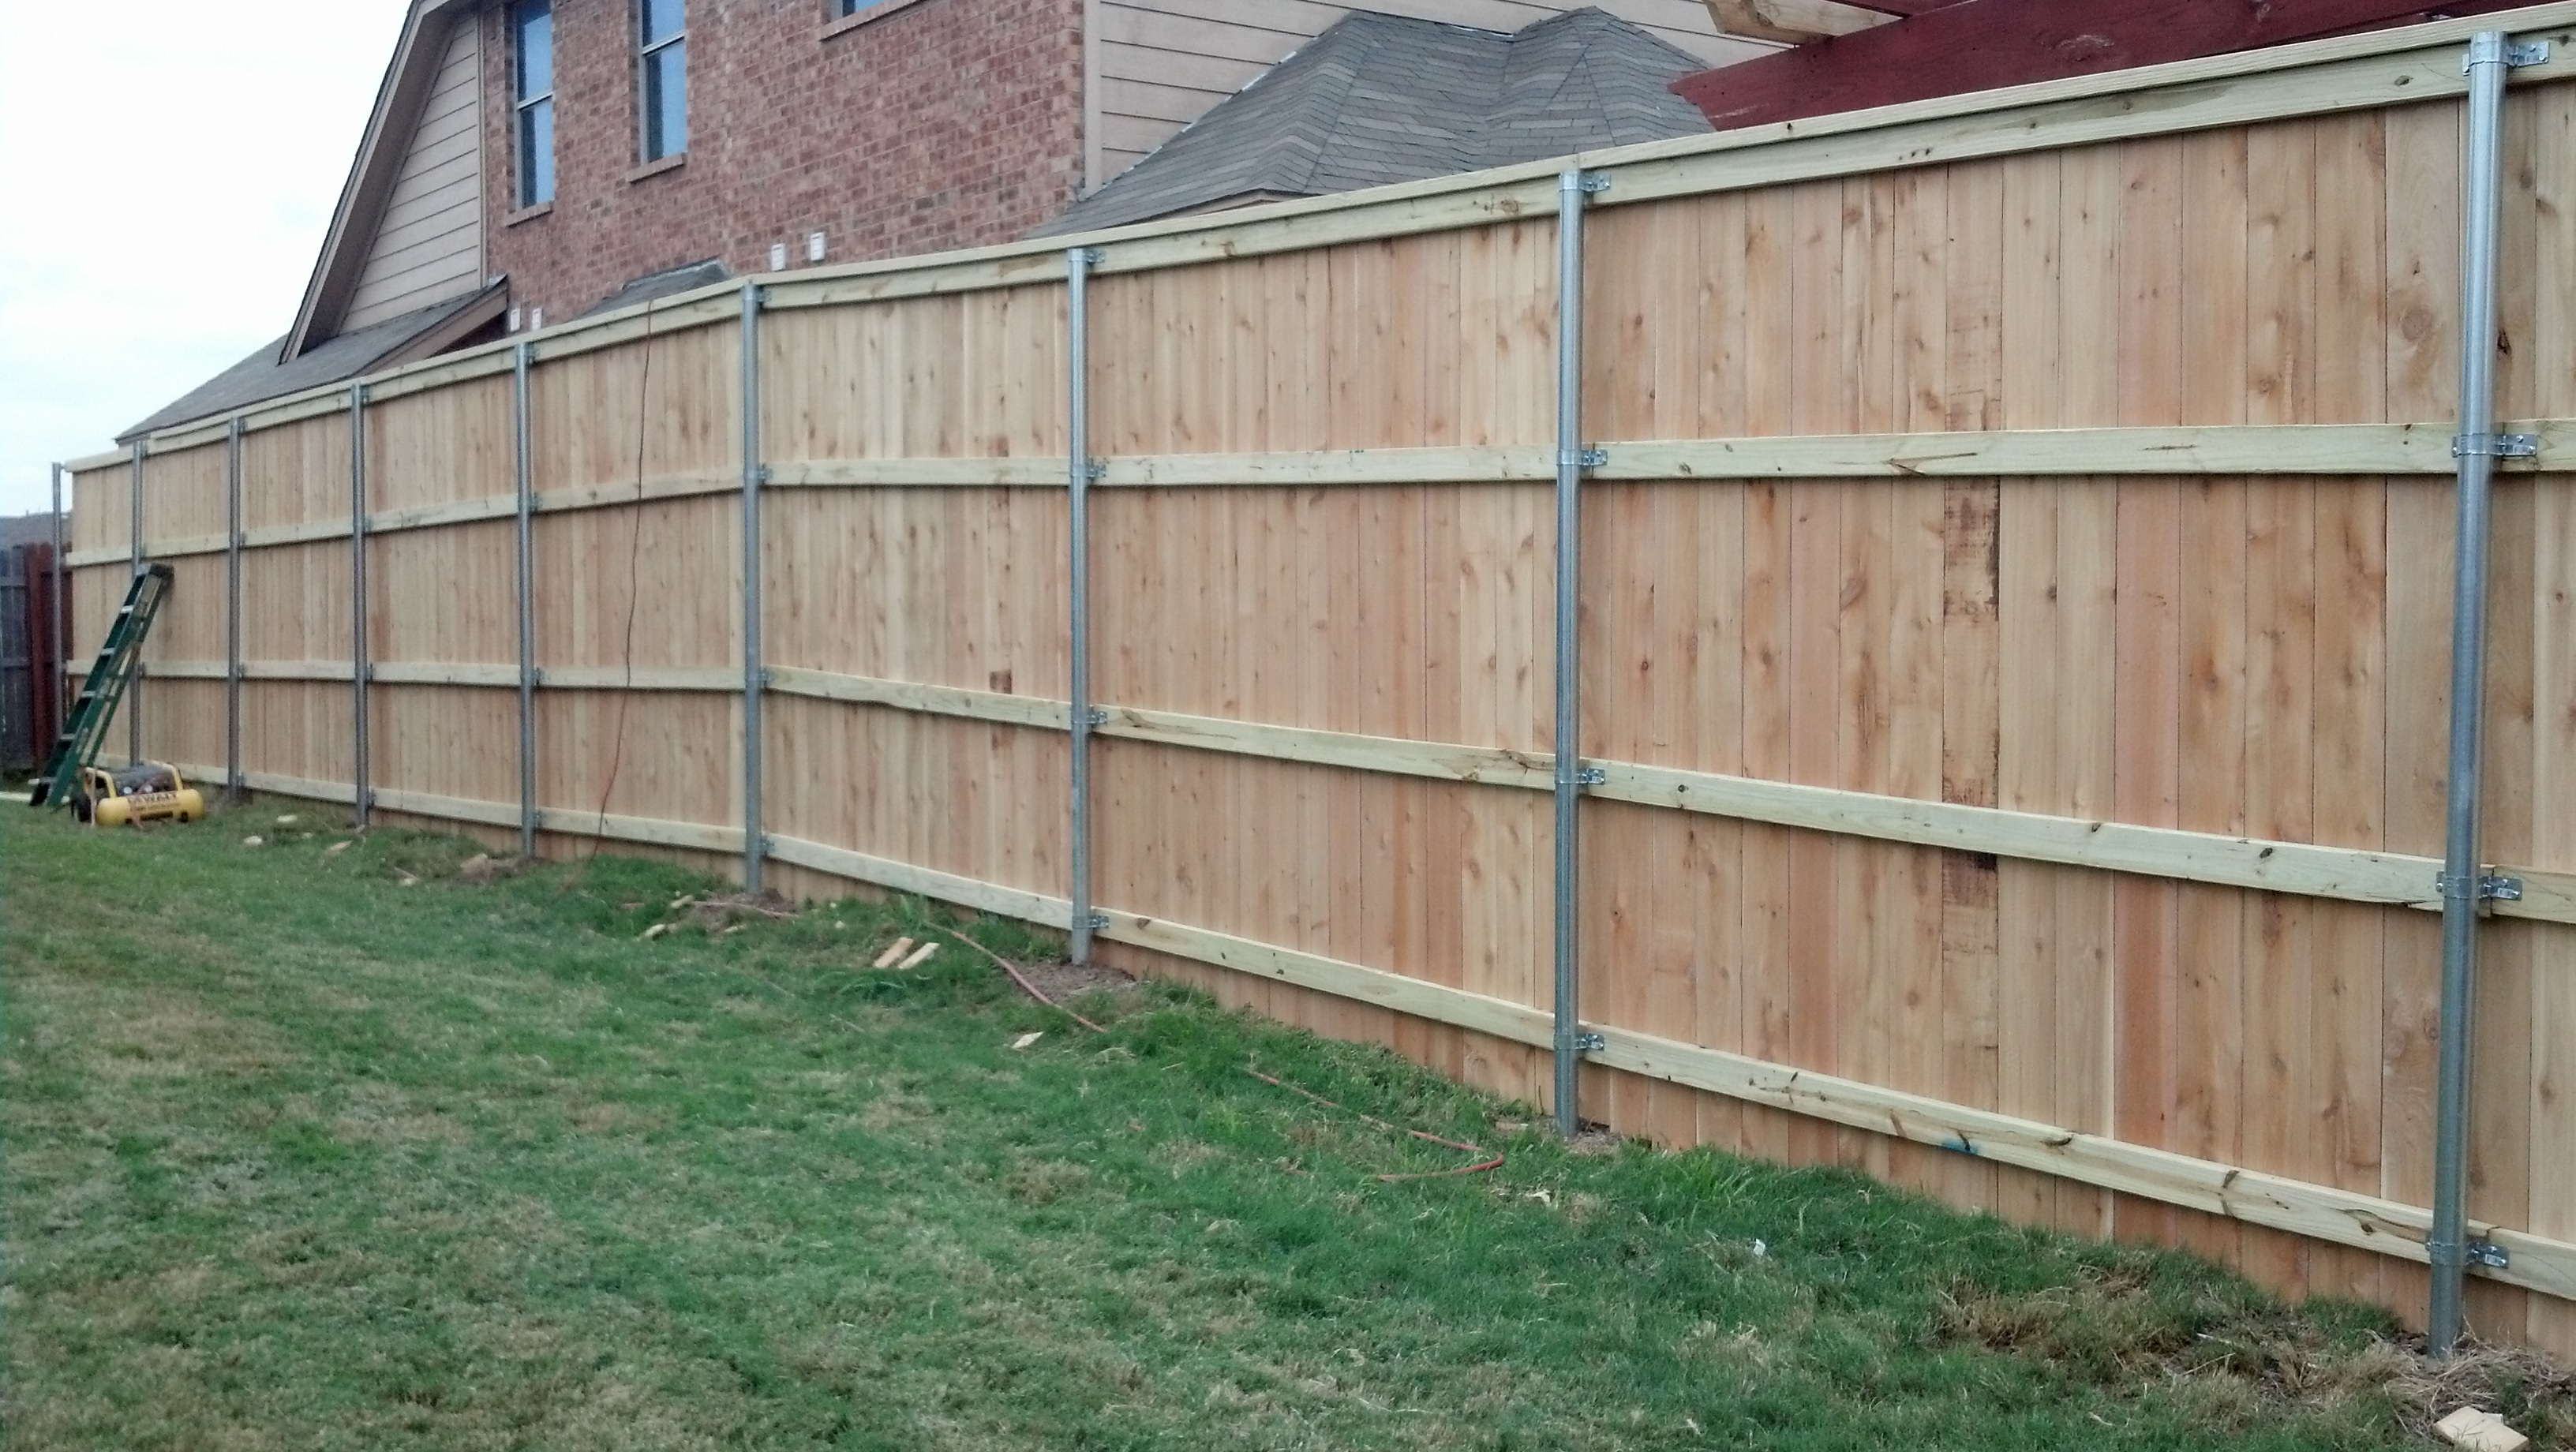 New fences fence king 8 foot tall 4 wide cedar pickets side by side style flat top with cedar cap unstained baanklon Images